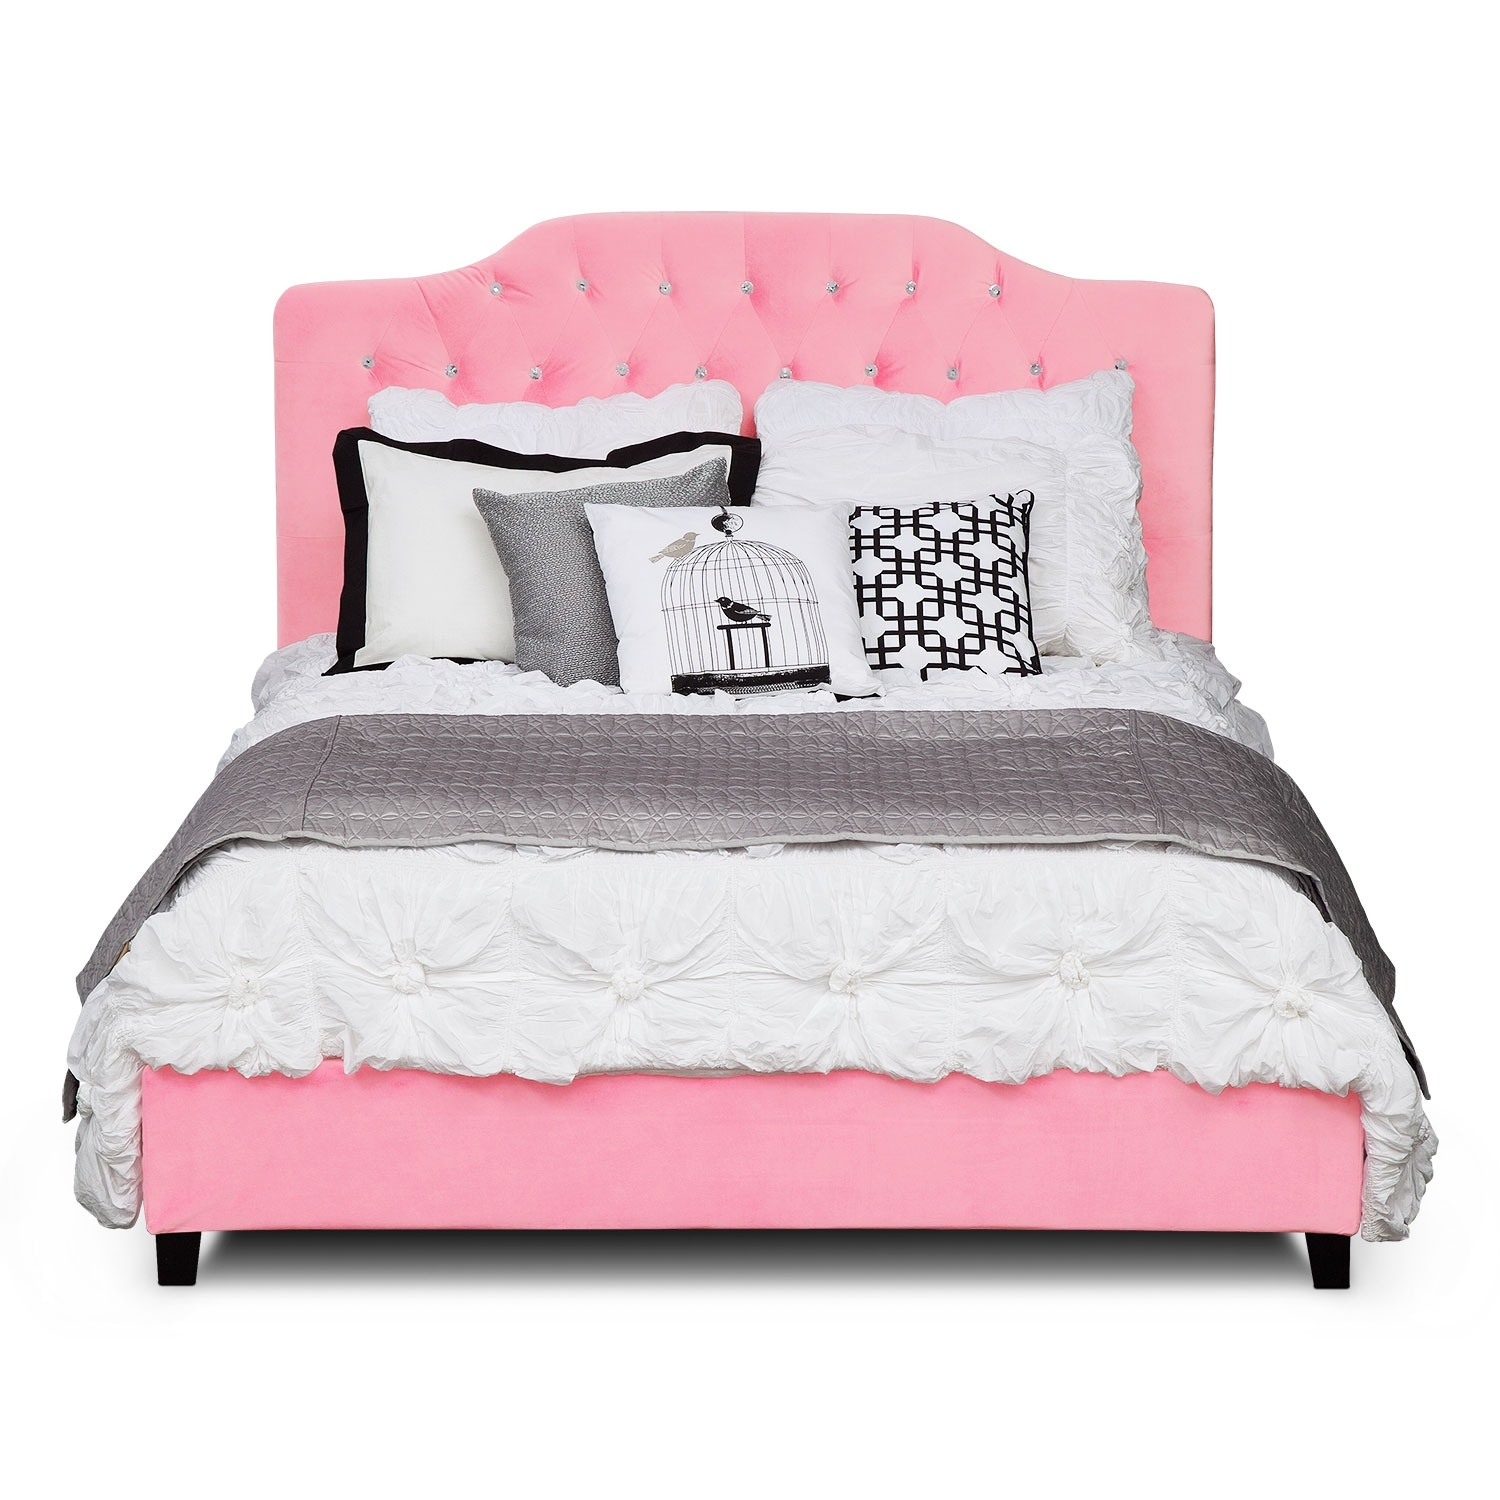 Valerie Upholstered Bed | American Signature Furniture